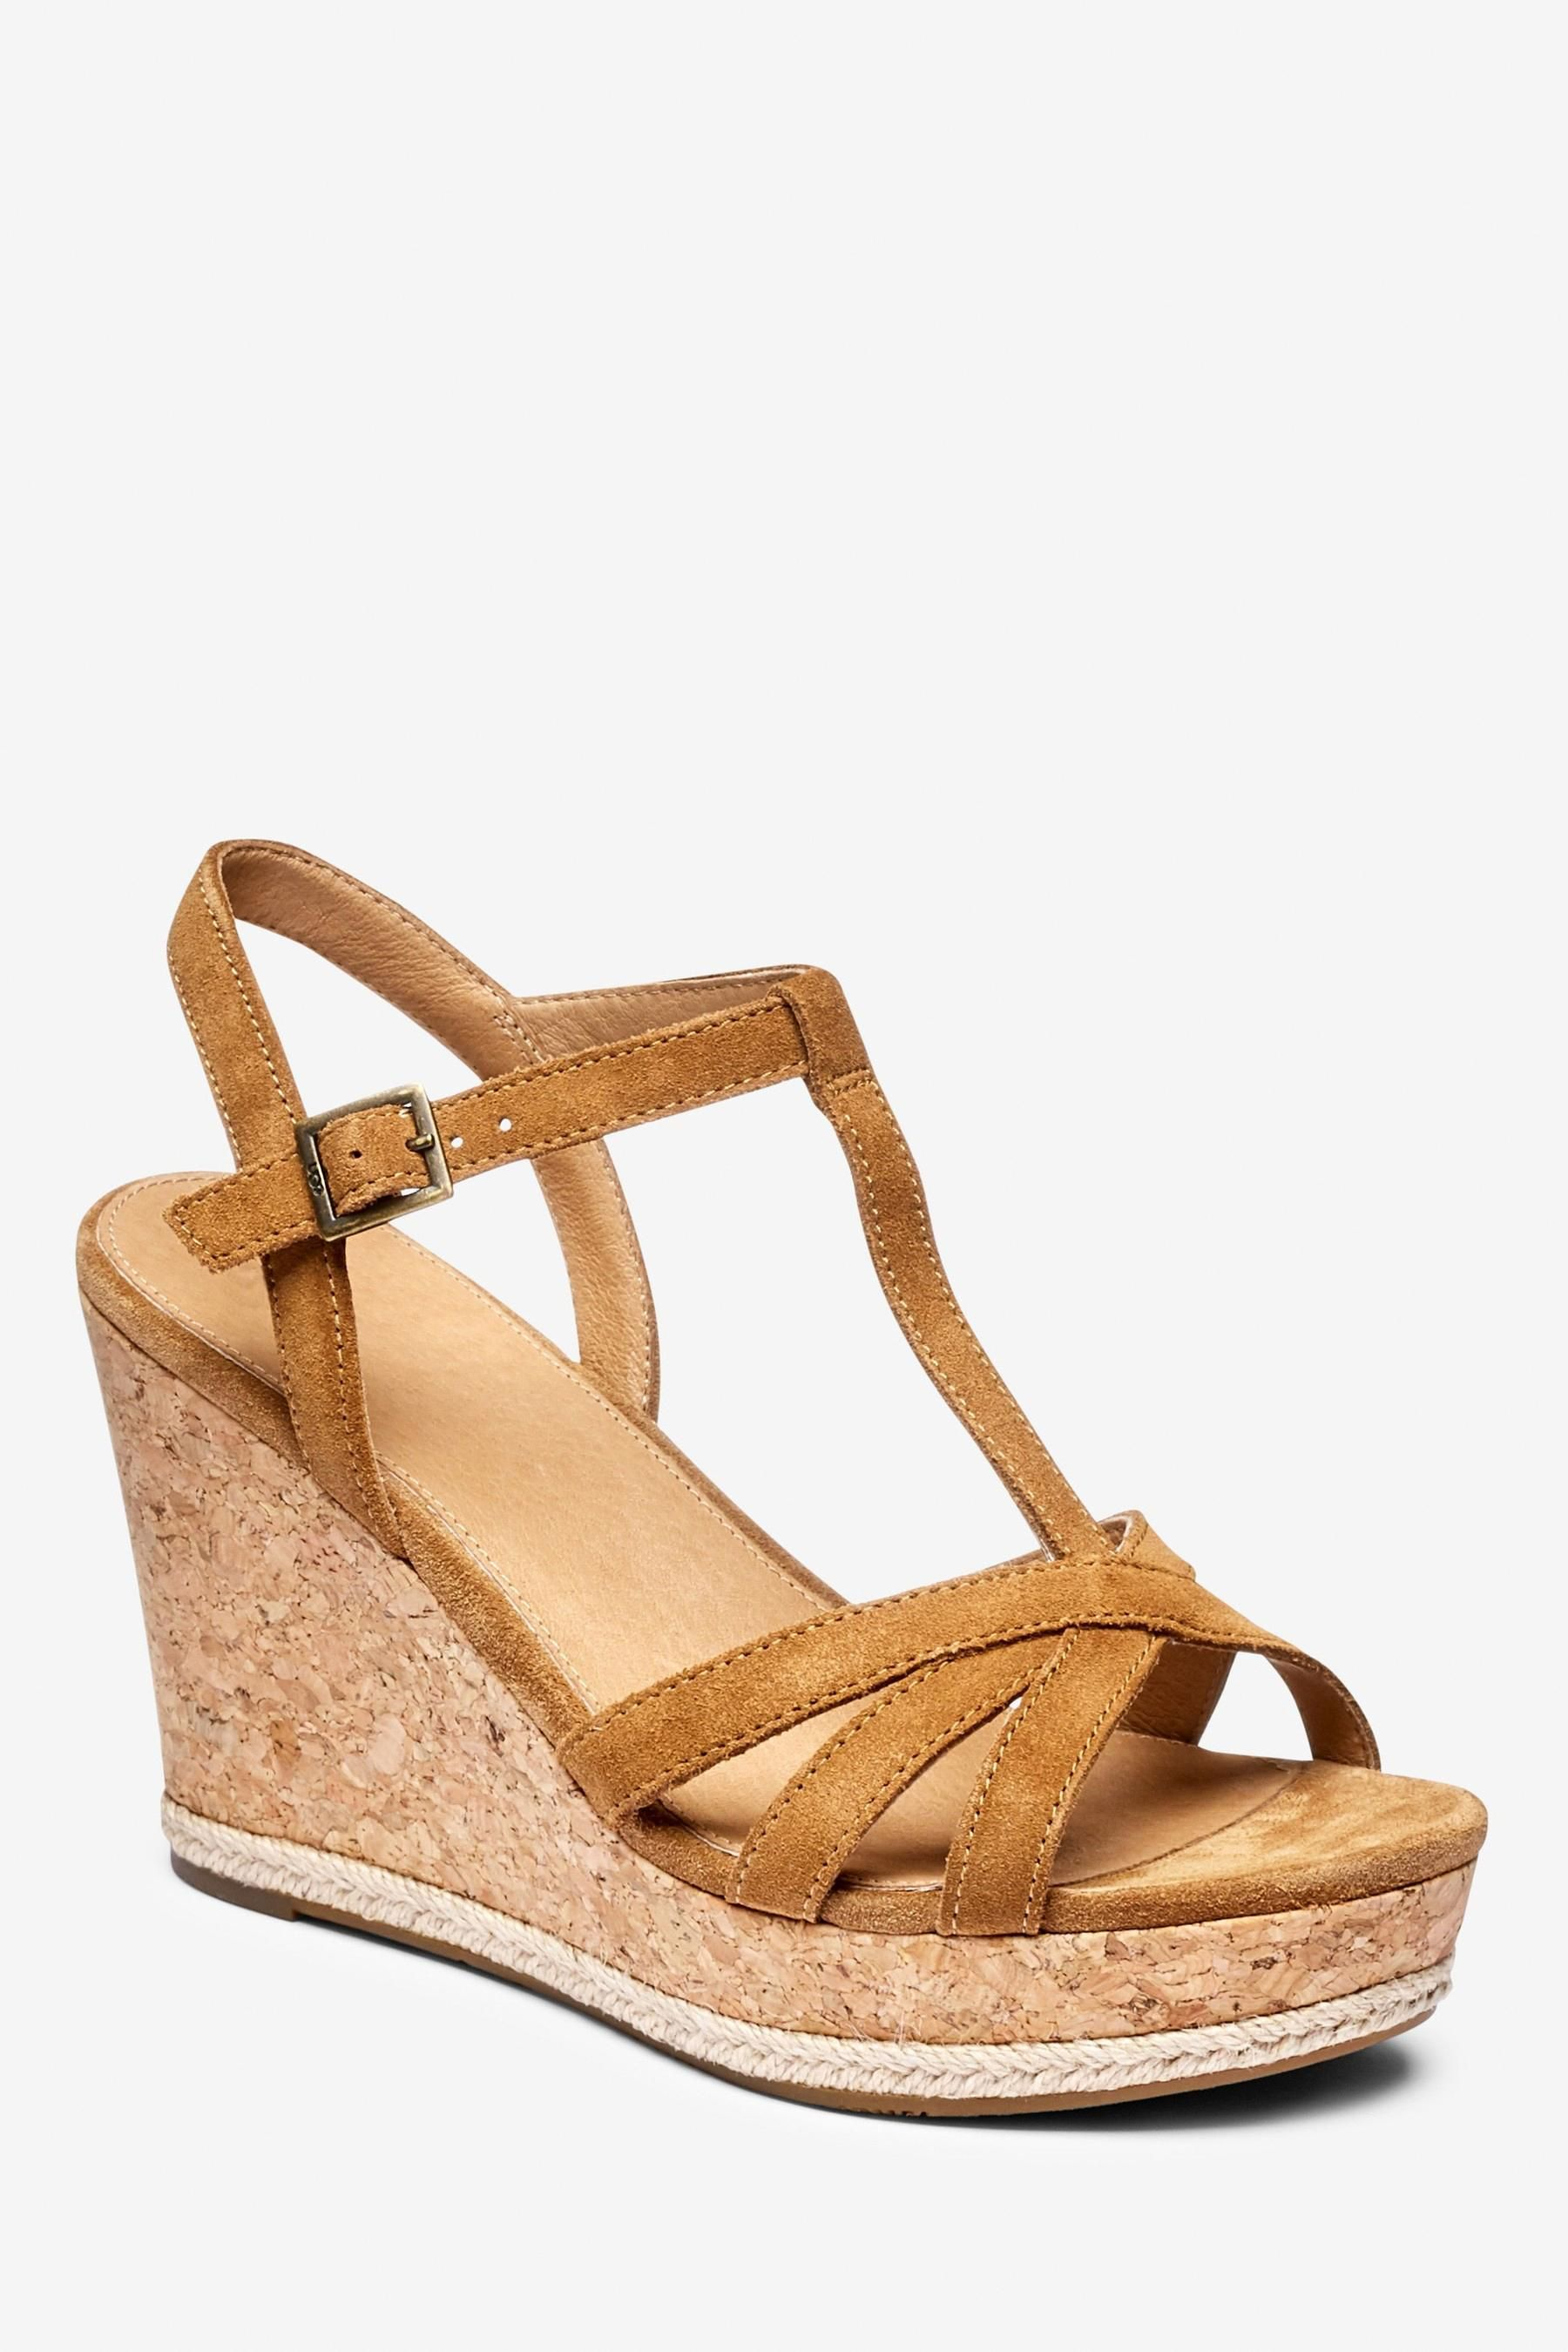 Strappy sandals wedge, Strappy wedges